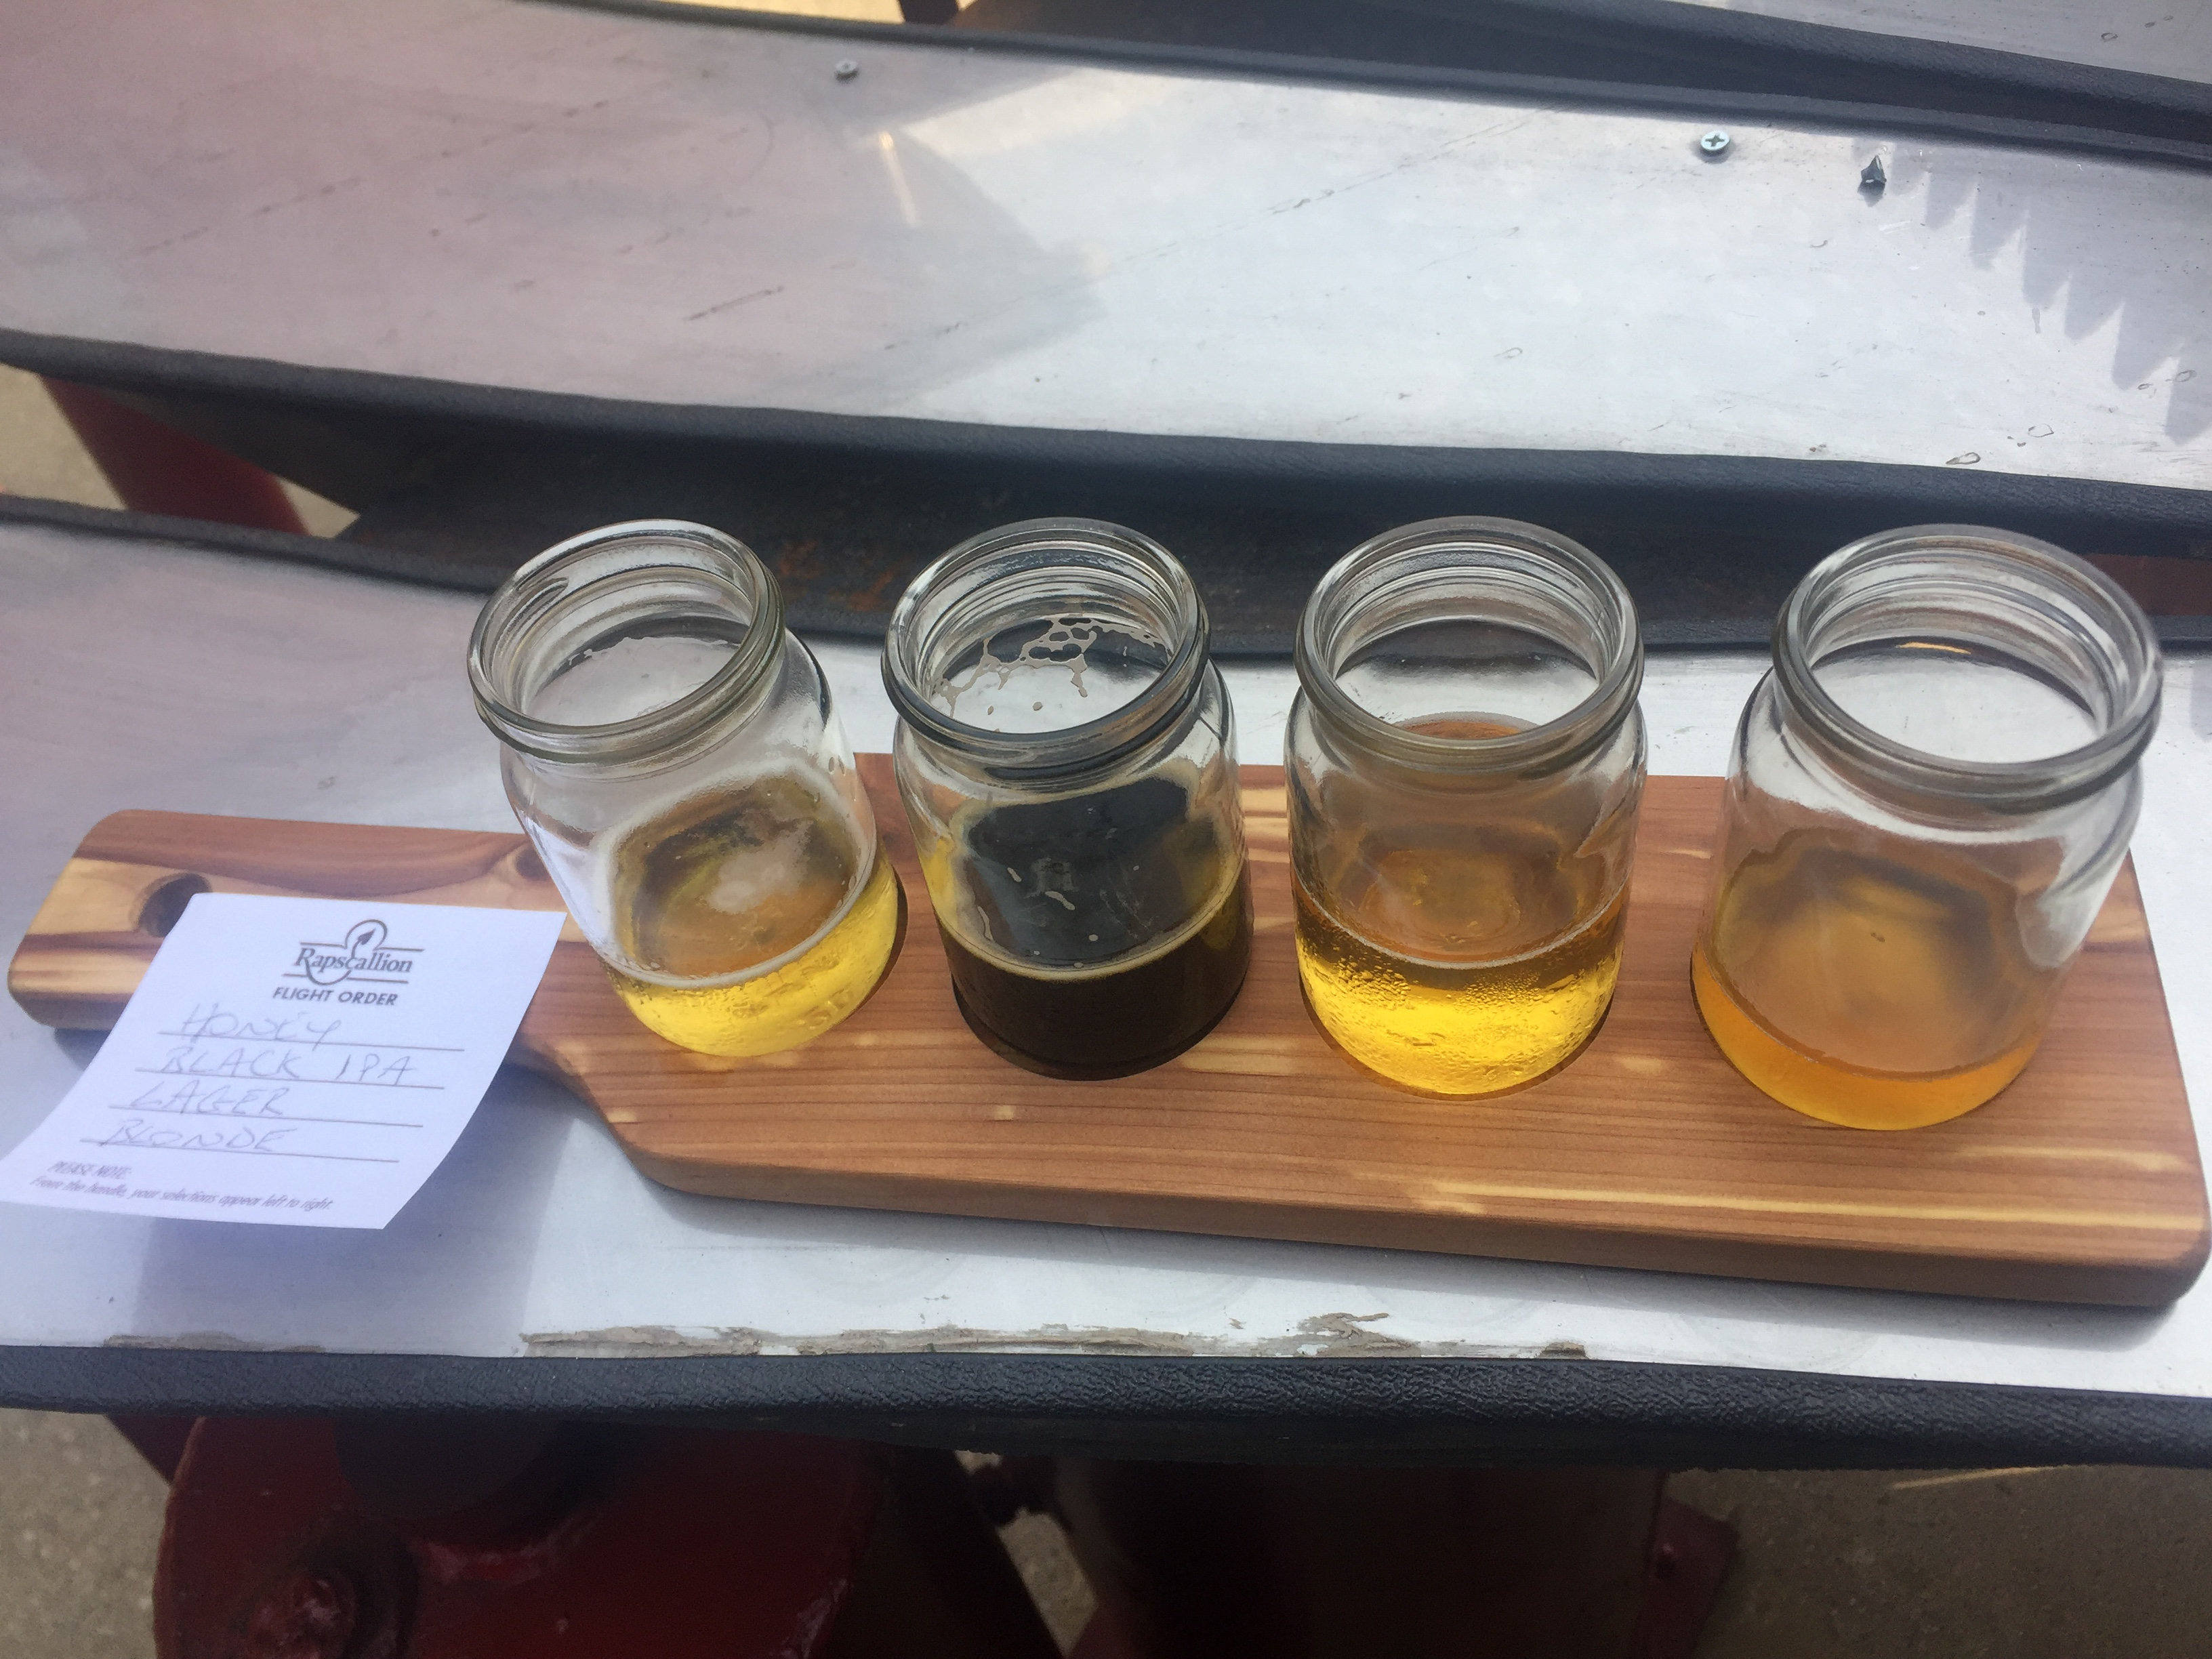 Taster at Rapscallion brewery